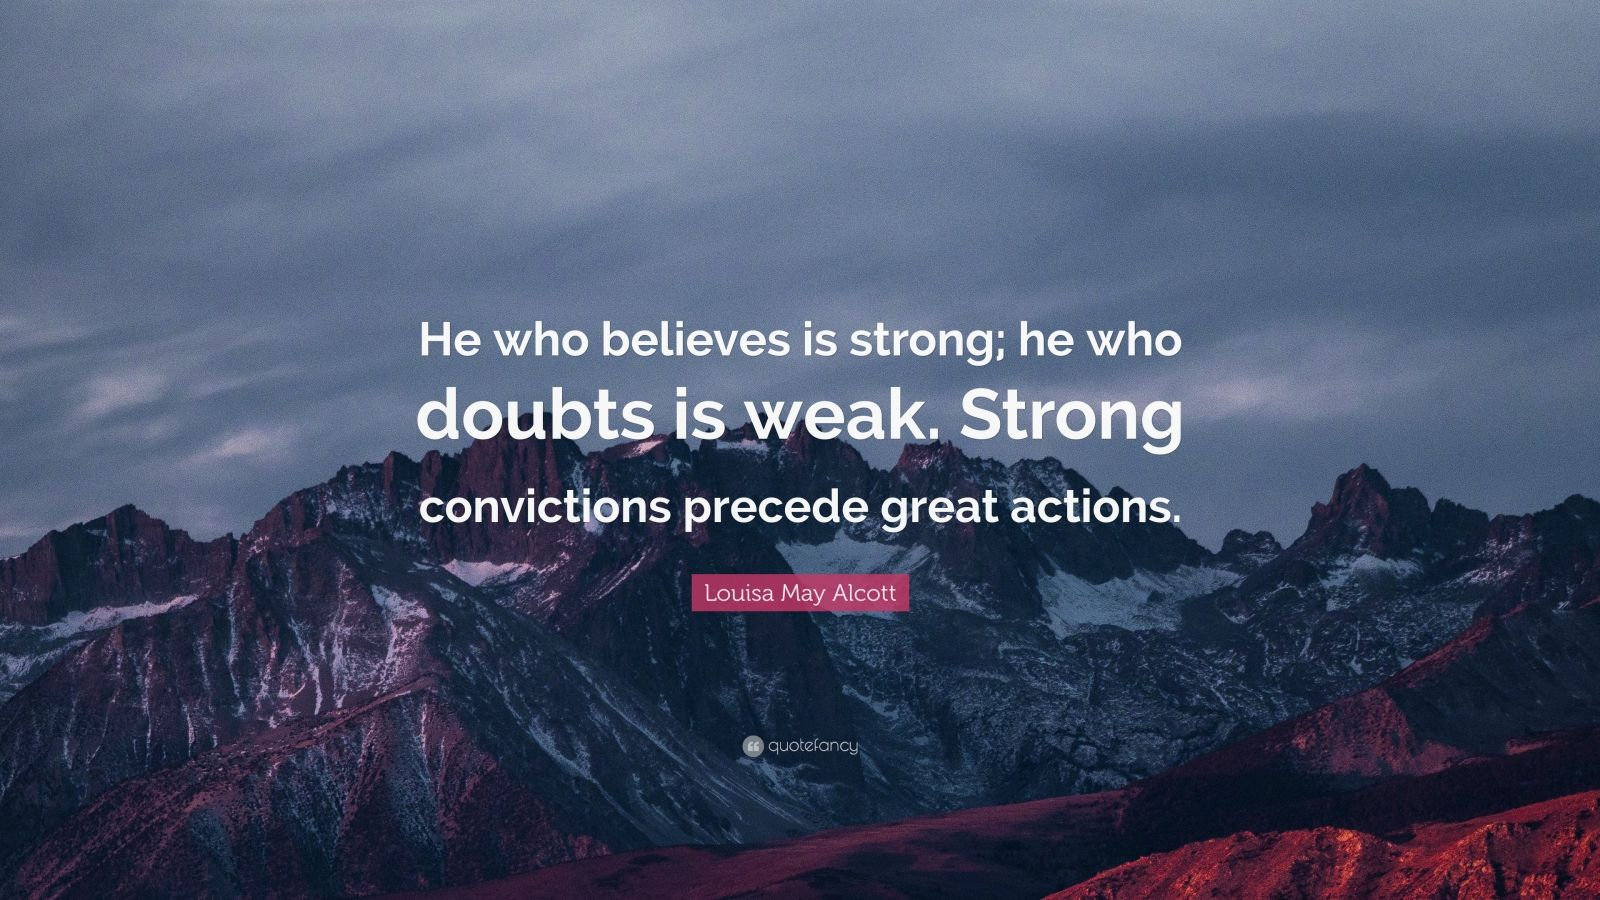 """Louisa May Alcott Quote: """"He who believes is strong; he who doubts is weak. Strong convictions precede great actions."""""""